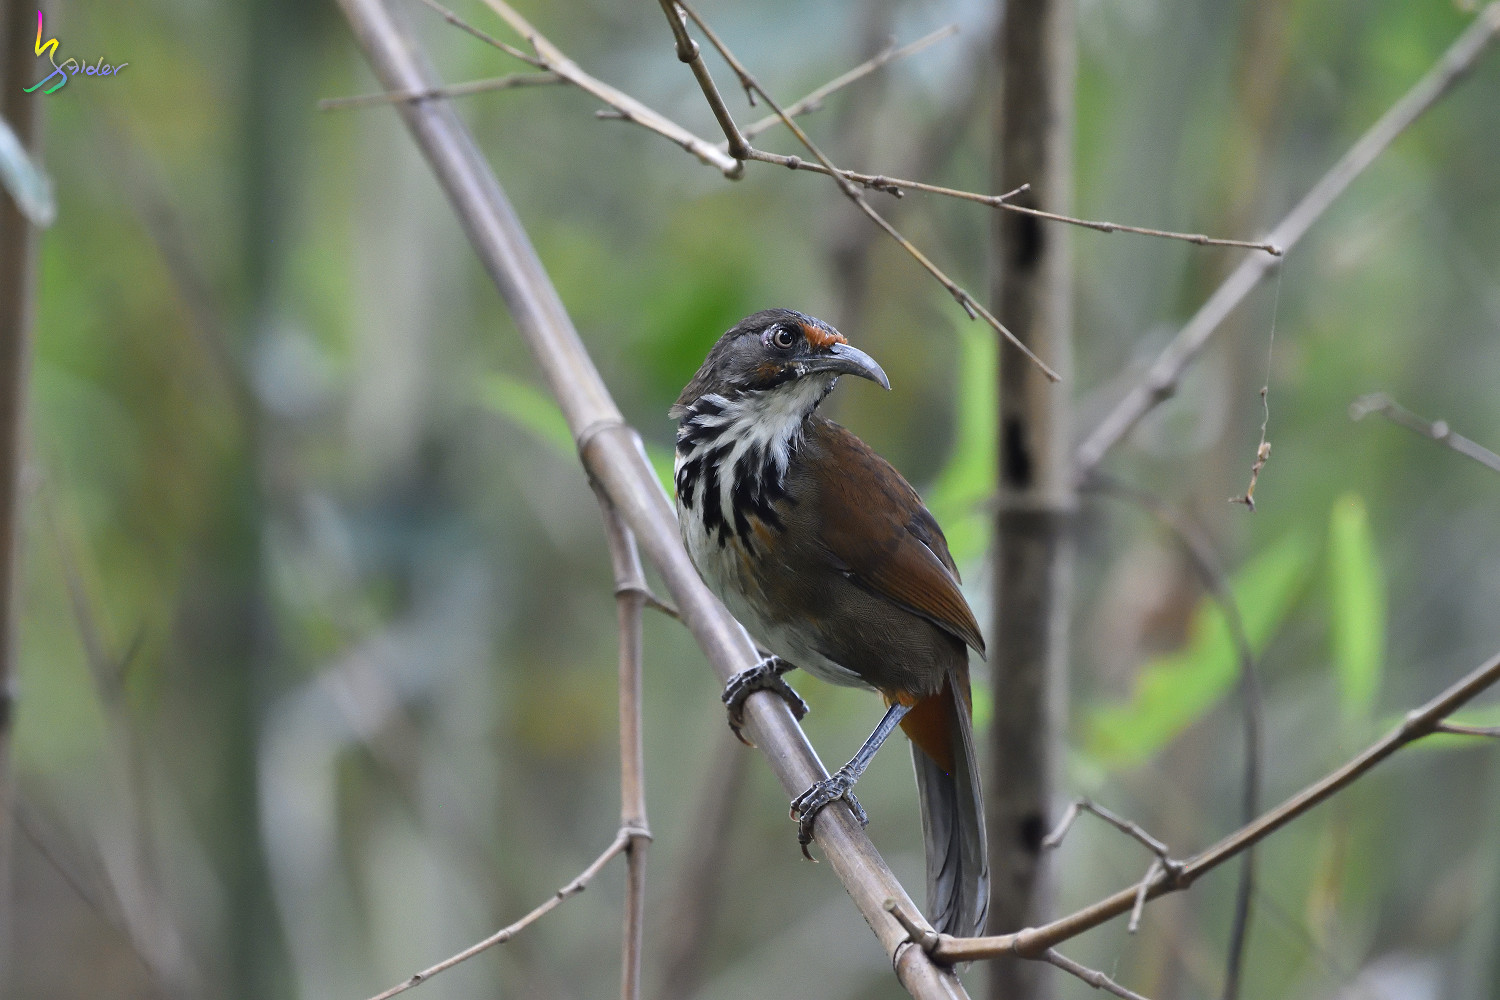 Rusty-cheeked_Scimitar_Babbler_2134